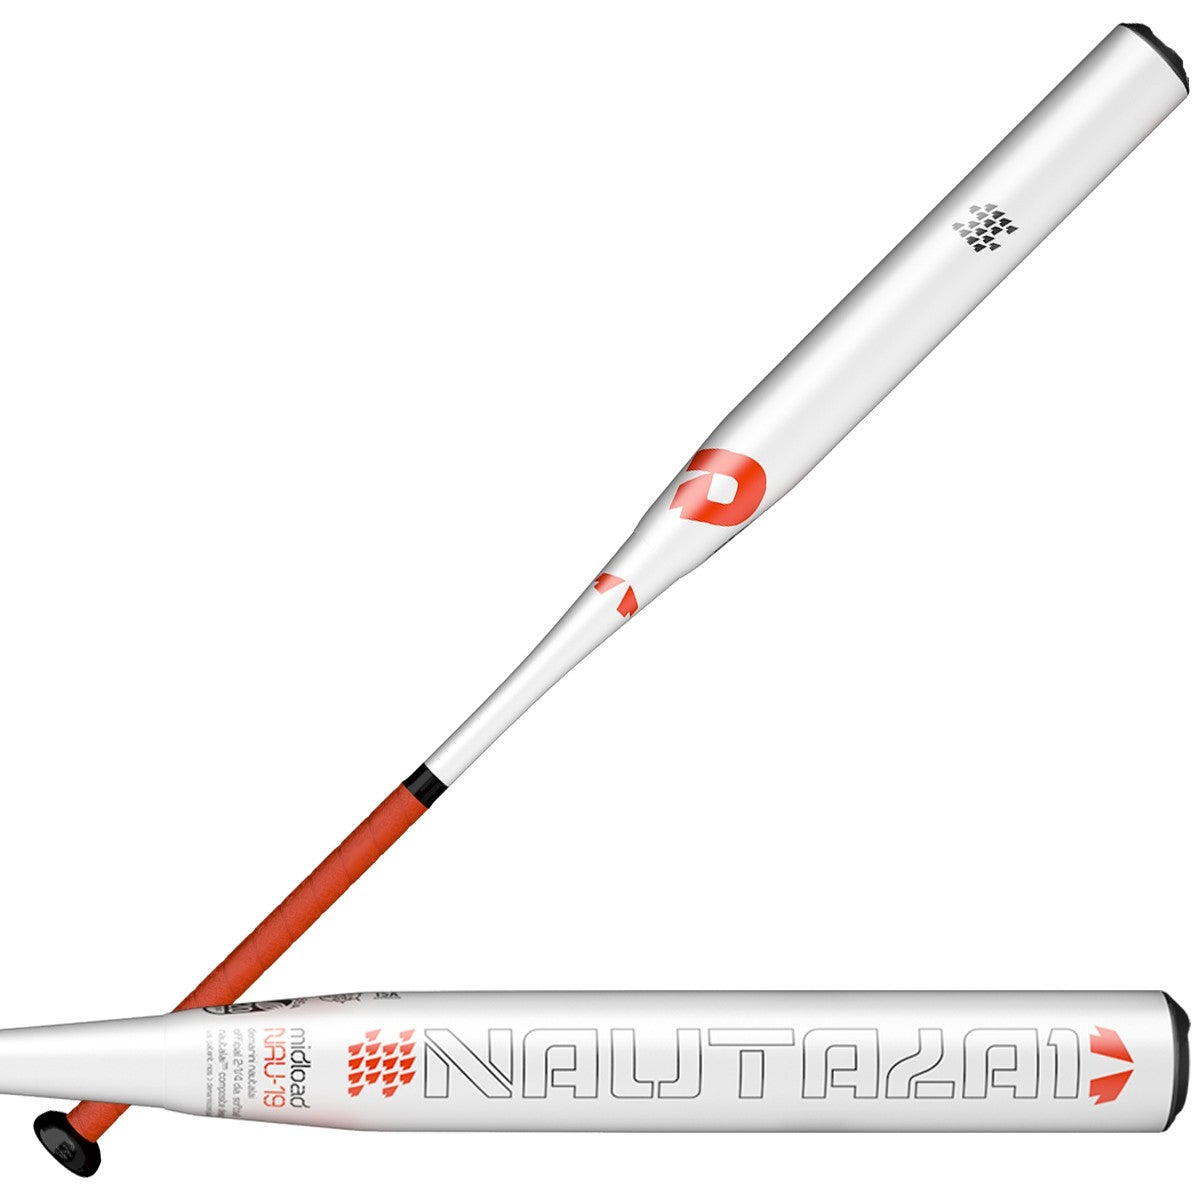 2019 Nautalai Balance Slowpitch Bat | DeMarini